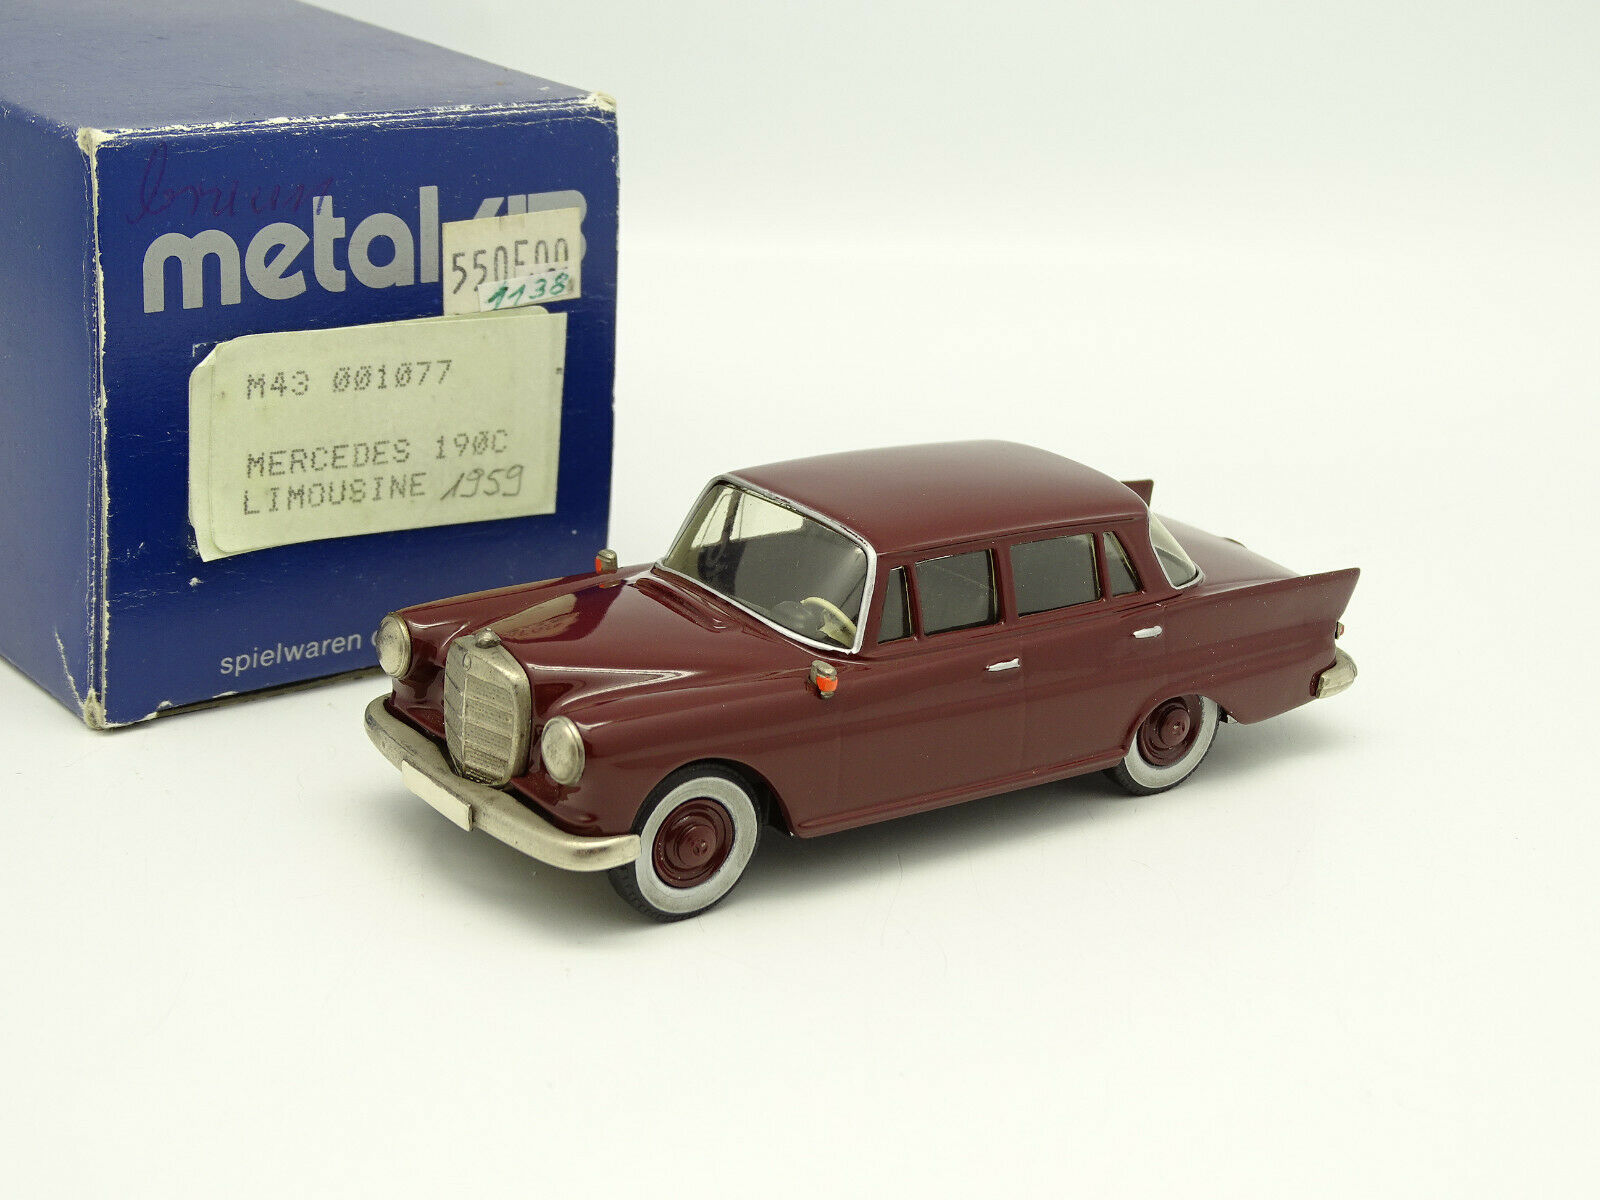 43 metal puzzles Danhausen 1 43 - mercedes 190c red 1959